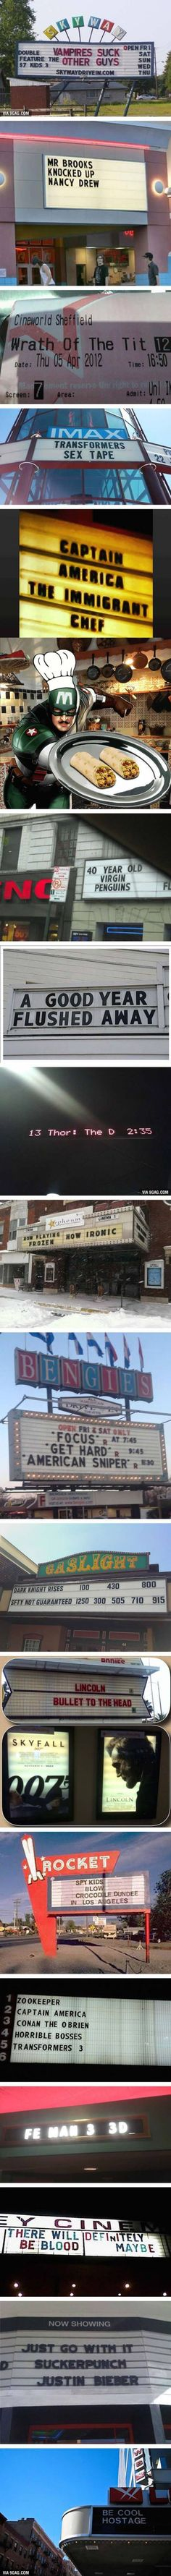 15 Hilarious Movie Theater Coincidences